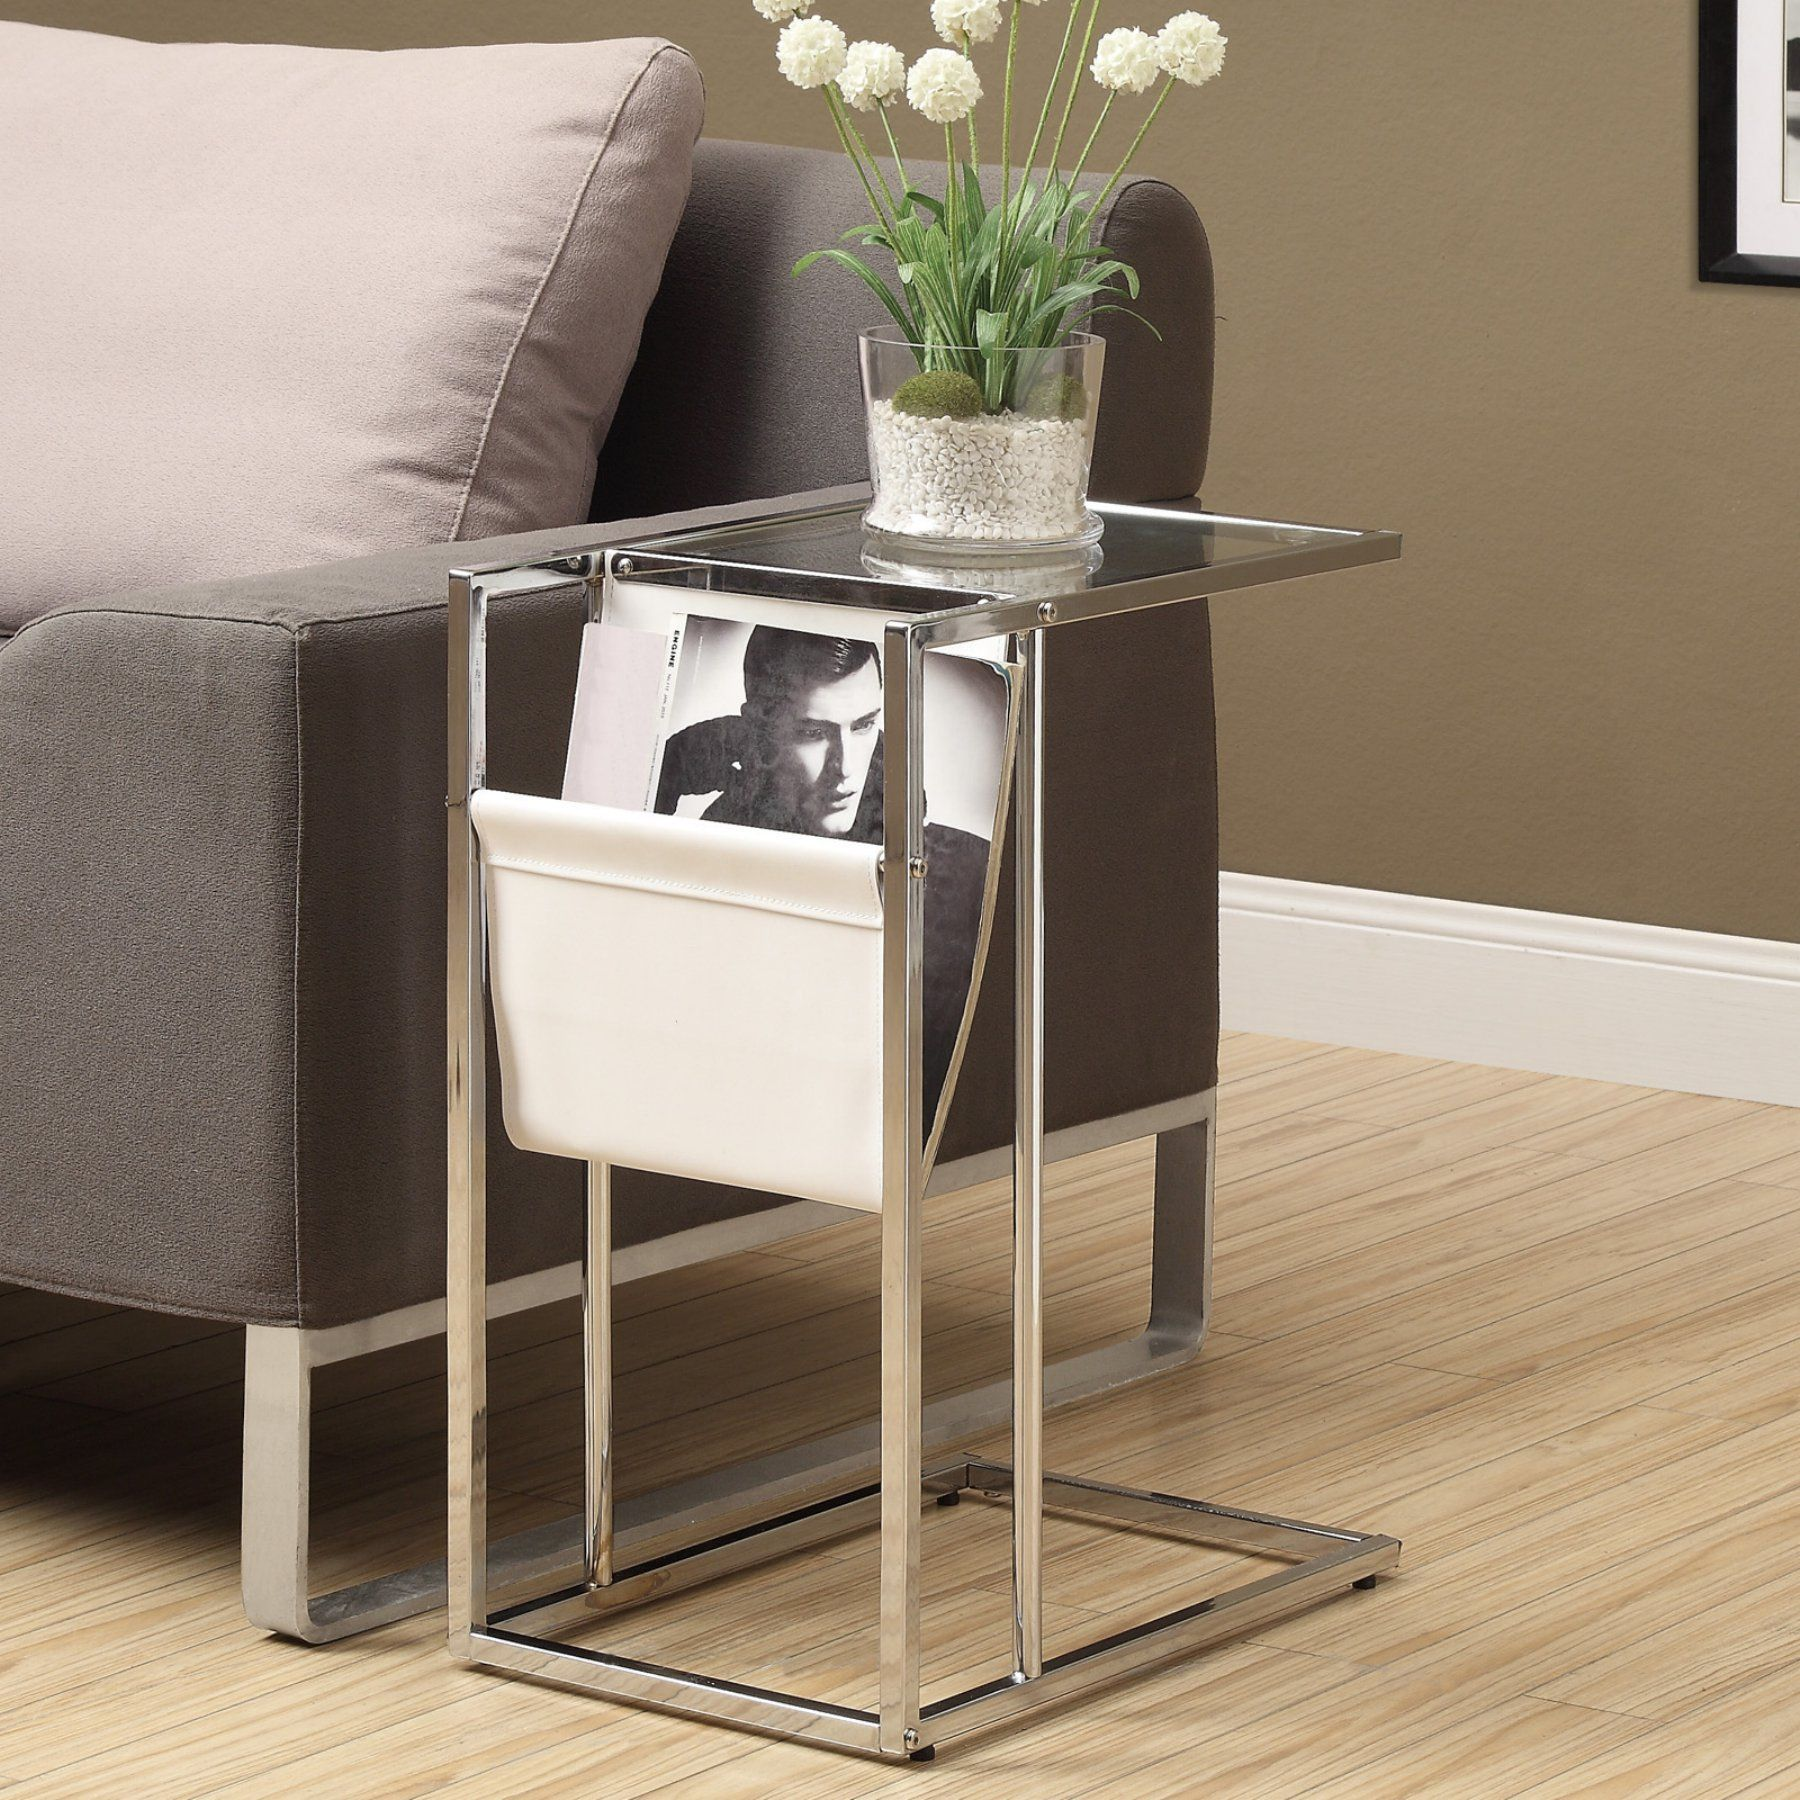 monarch white and chrome metal accent table with magazine rack outdoor sets glass top coffee storage high back chair red bedroom lamps target desk furniture umbrella tablecloths